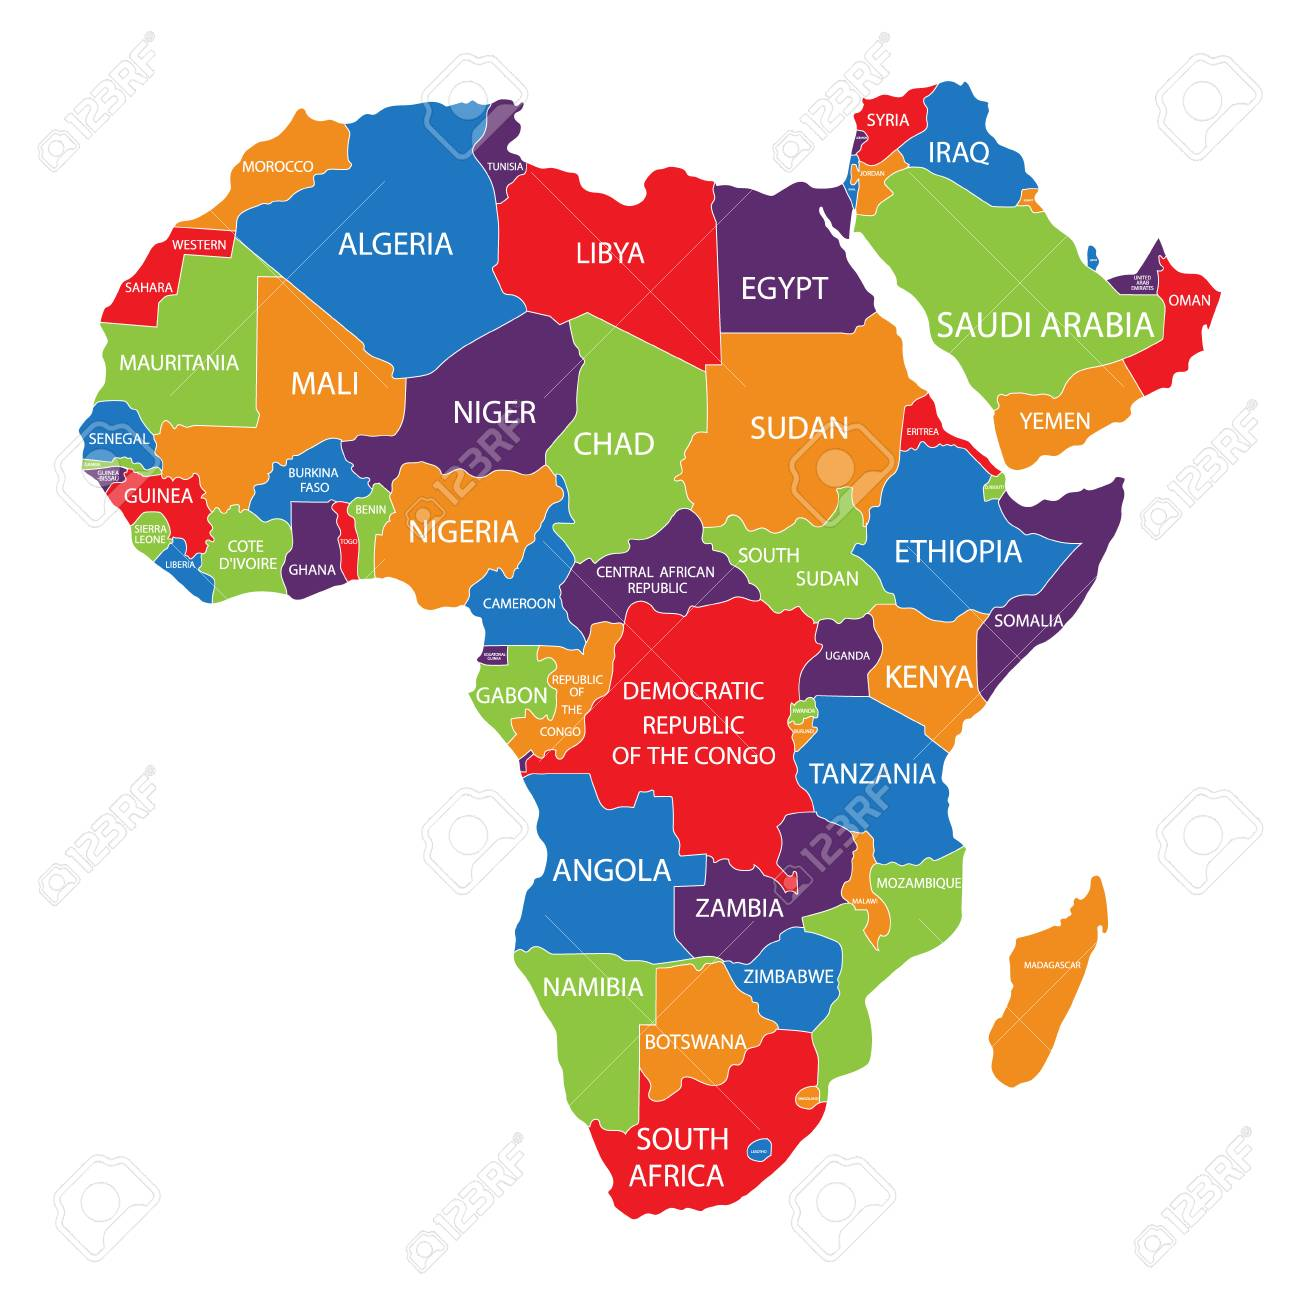 Raster illustration africa map with countries names isolated stock illustration raster illustration africa map with countries names isolated on white background african continent icon gumiabroncs Gallery